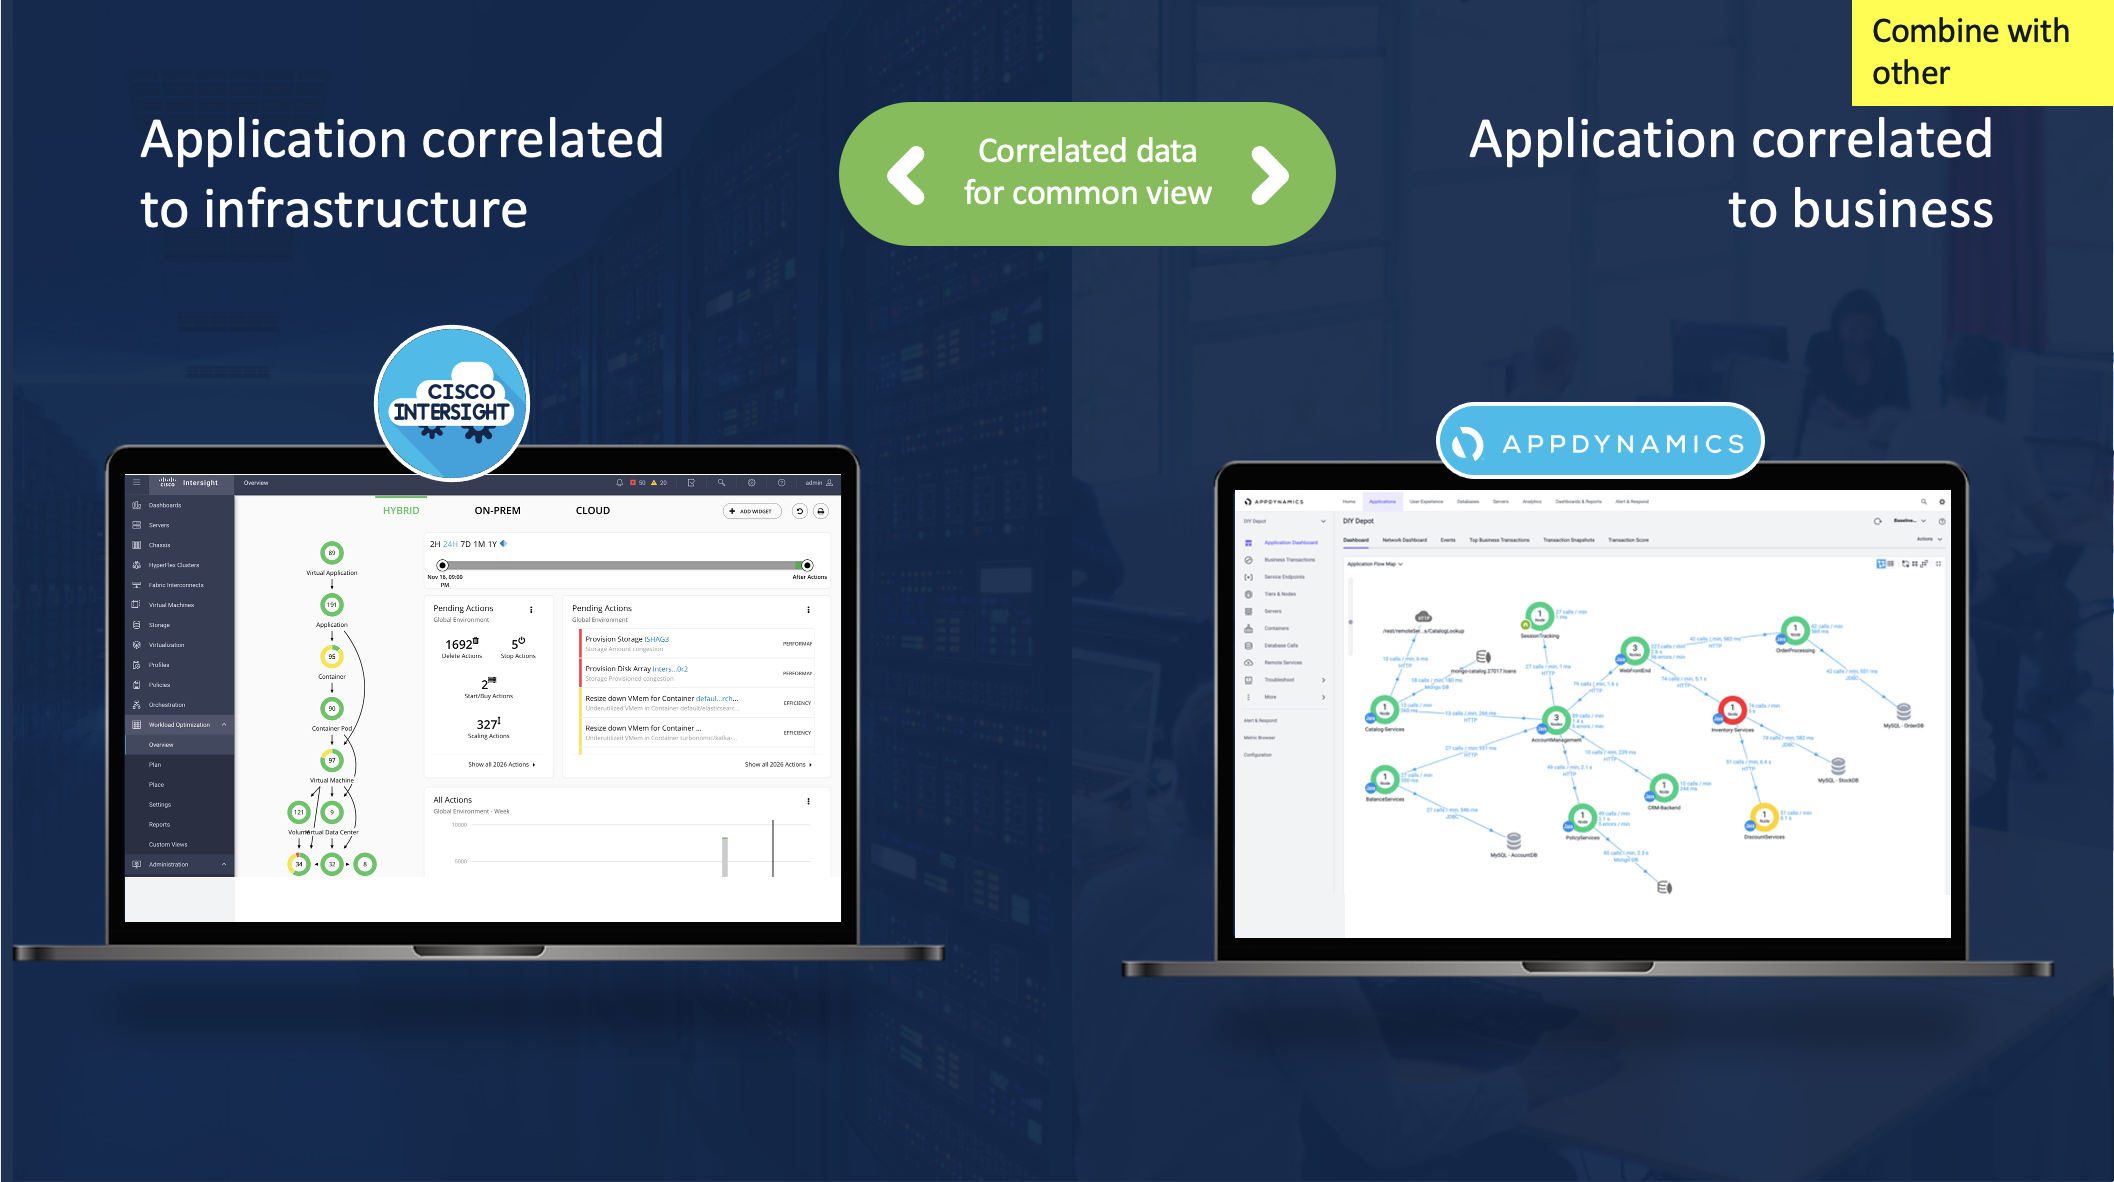 IWO correlates application data with infrastructure data. AppDynamics correlates application data to business outcomes.